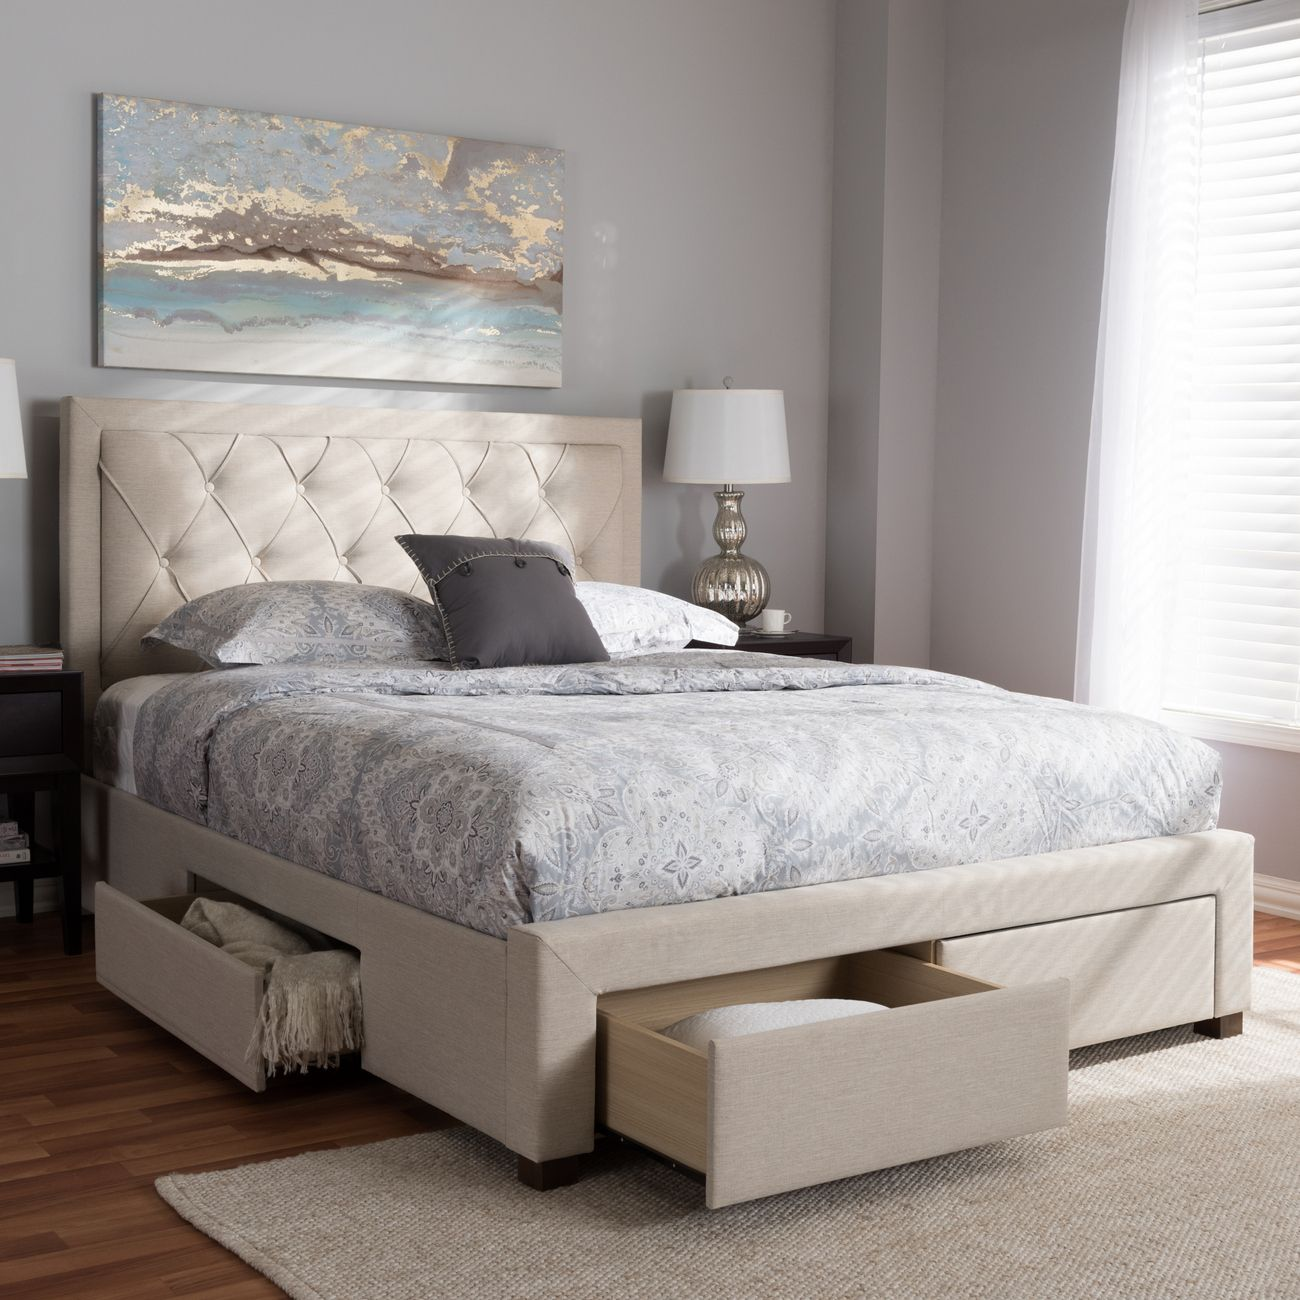 Baxton Studio Aurelie Modern Contemporary Light Beige Fabric Upholstered Queen Size Storage Bed Cf8622 D Light Beige Queen